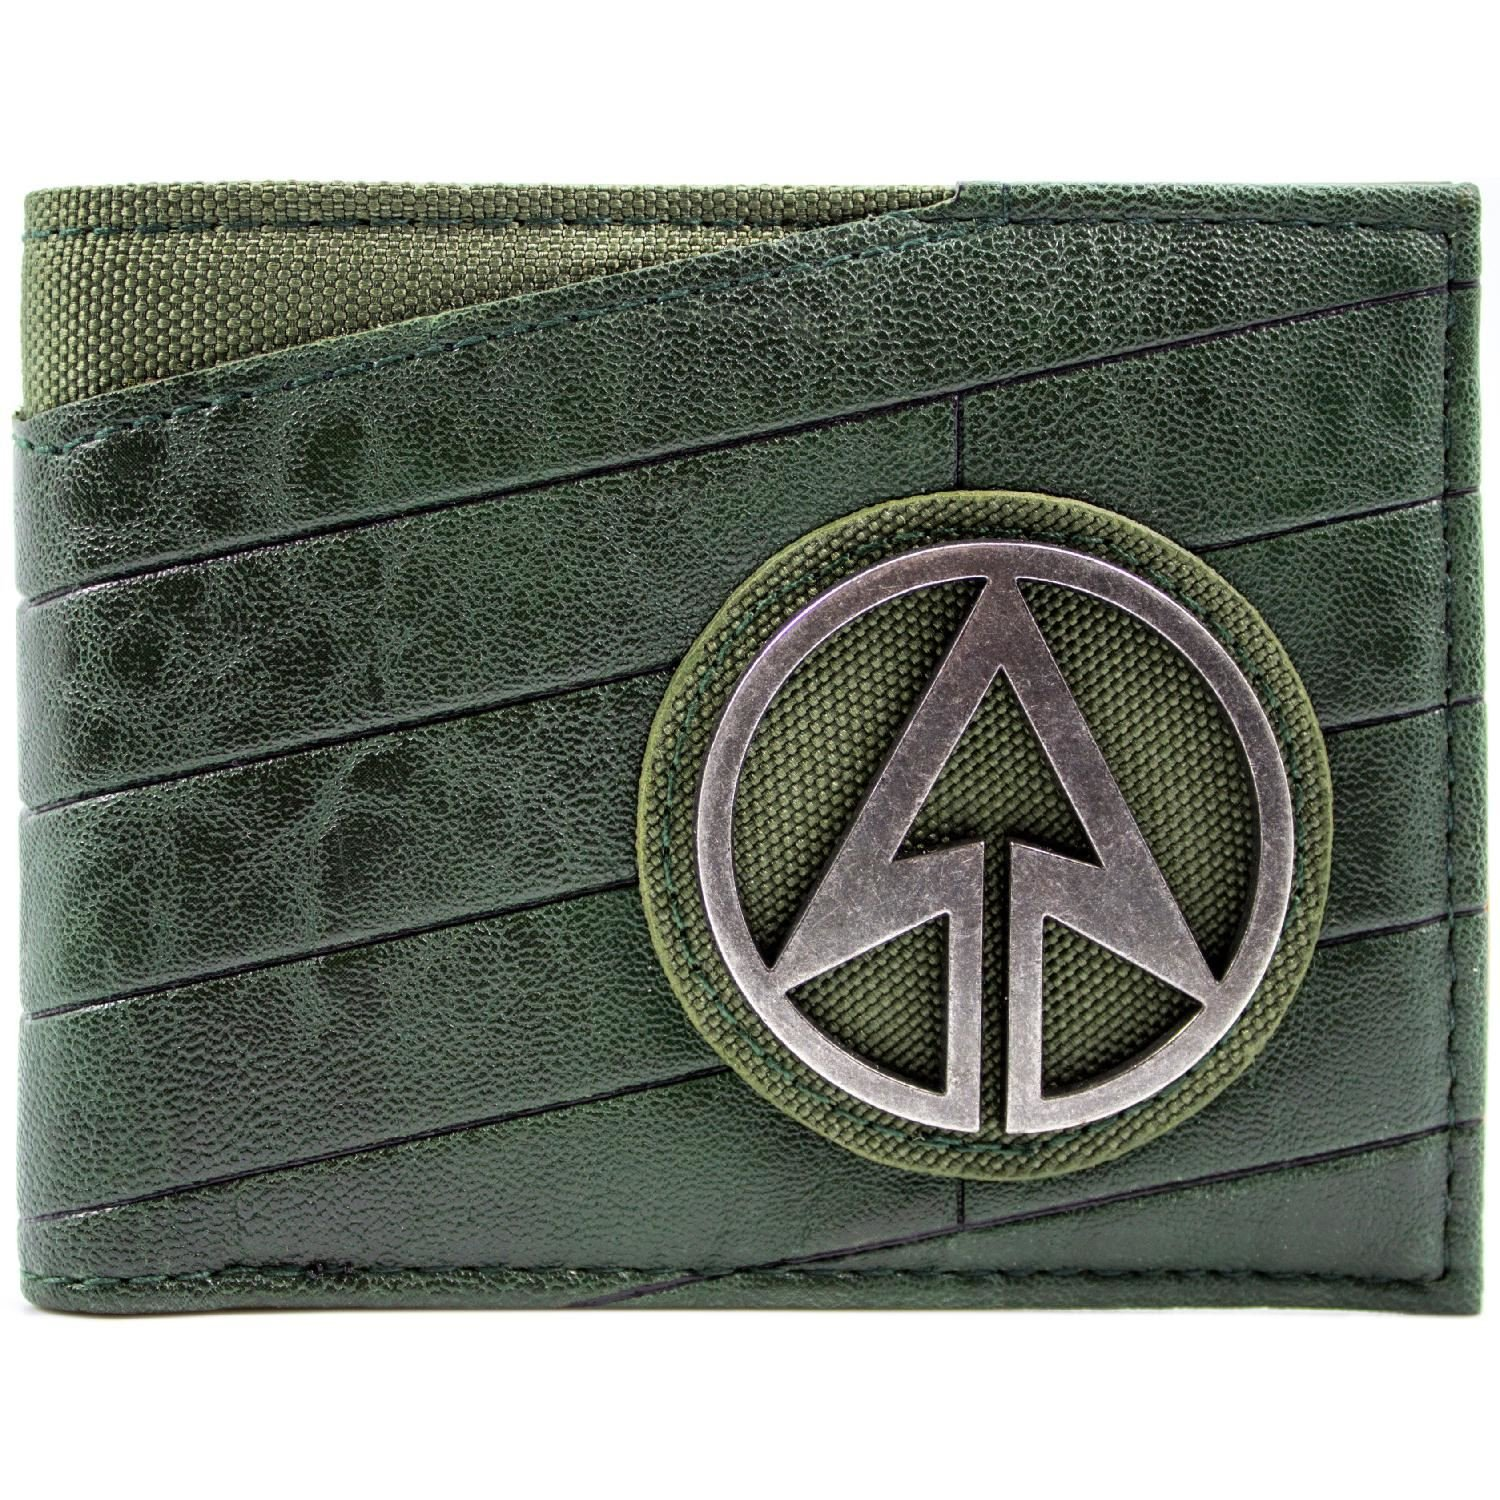 Cartera de DC Comics Arrow Emblema de superhéroes Negro 28771